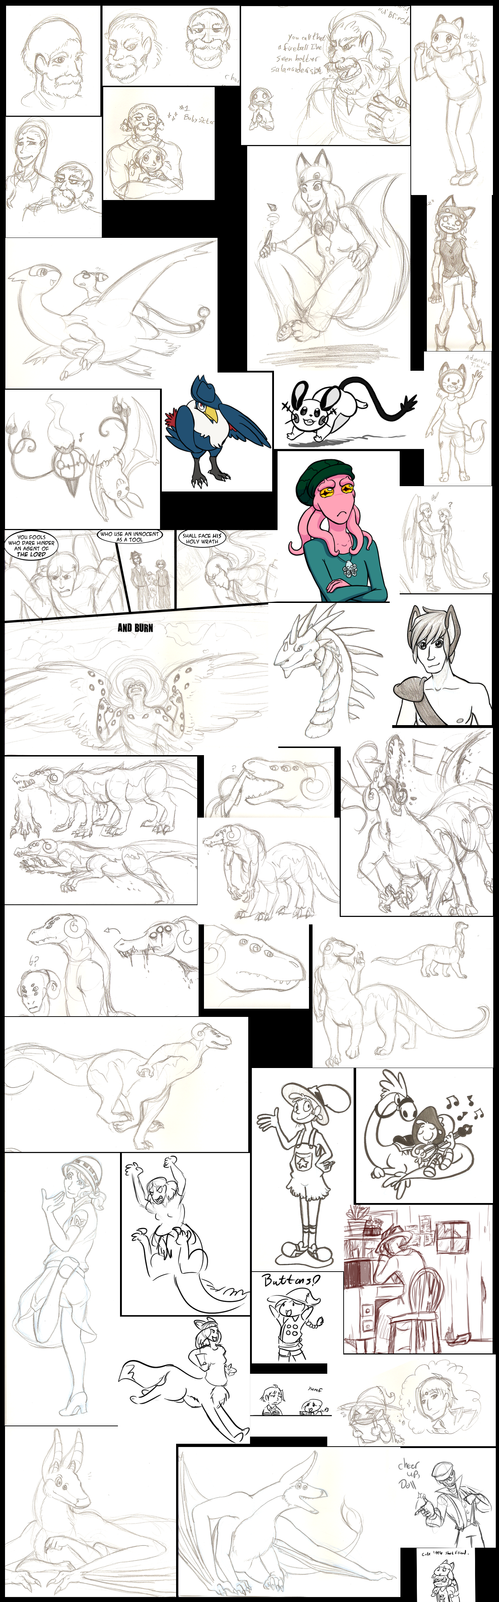 Sketchdump 1-29-14 by DarkKitsunegirl